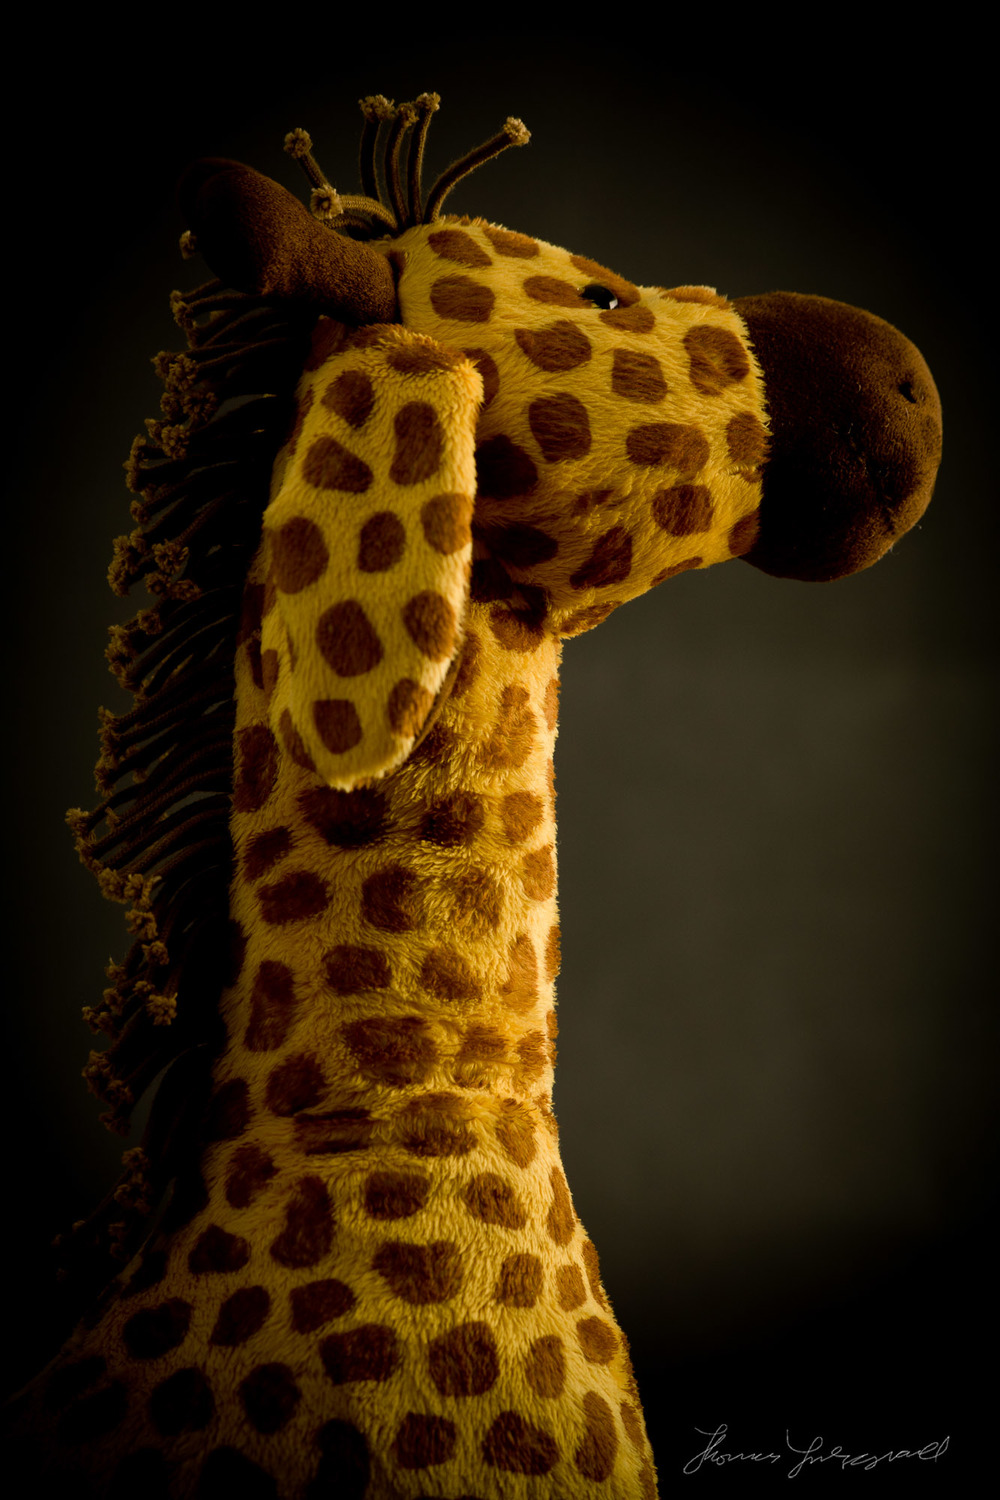 Stuffed Giraffe Teddy Bear Portrait